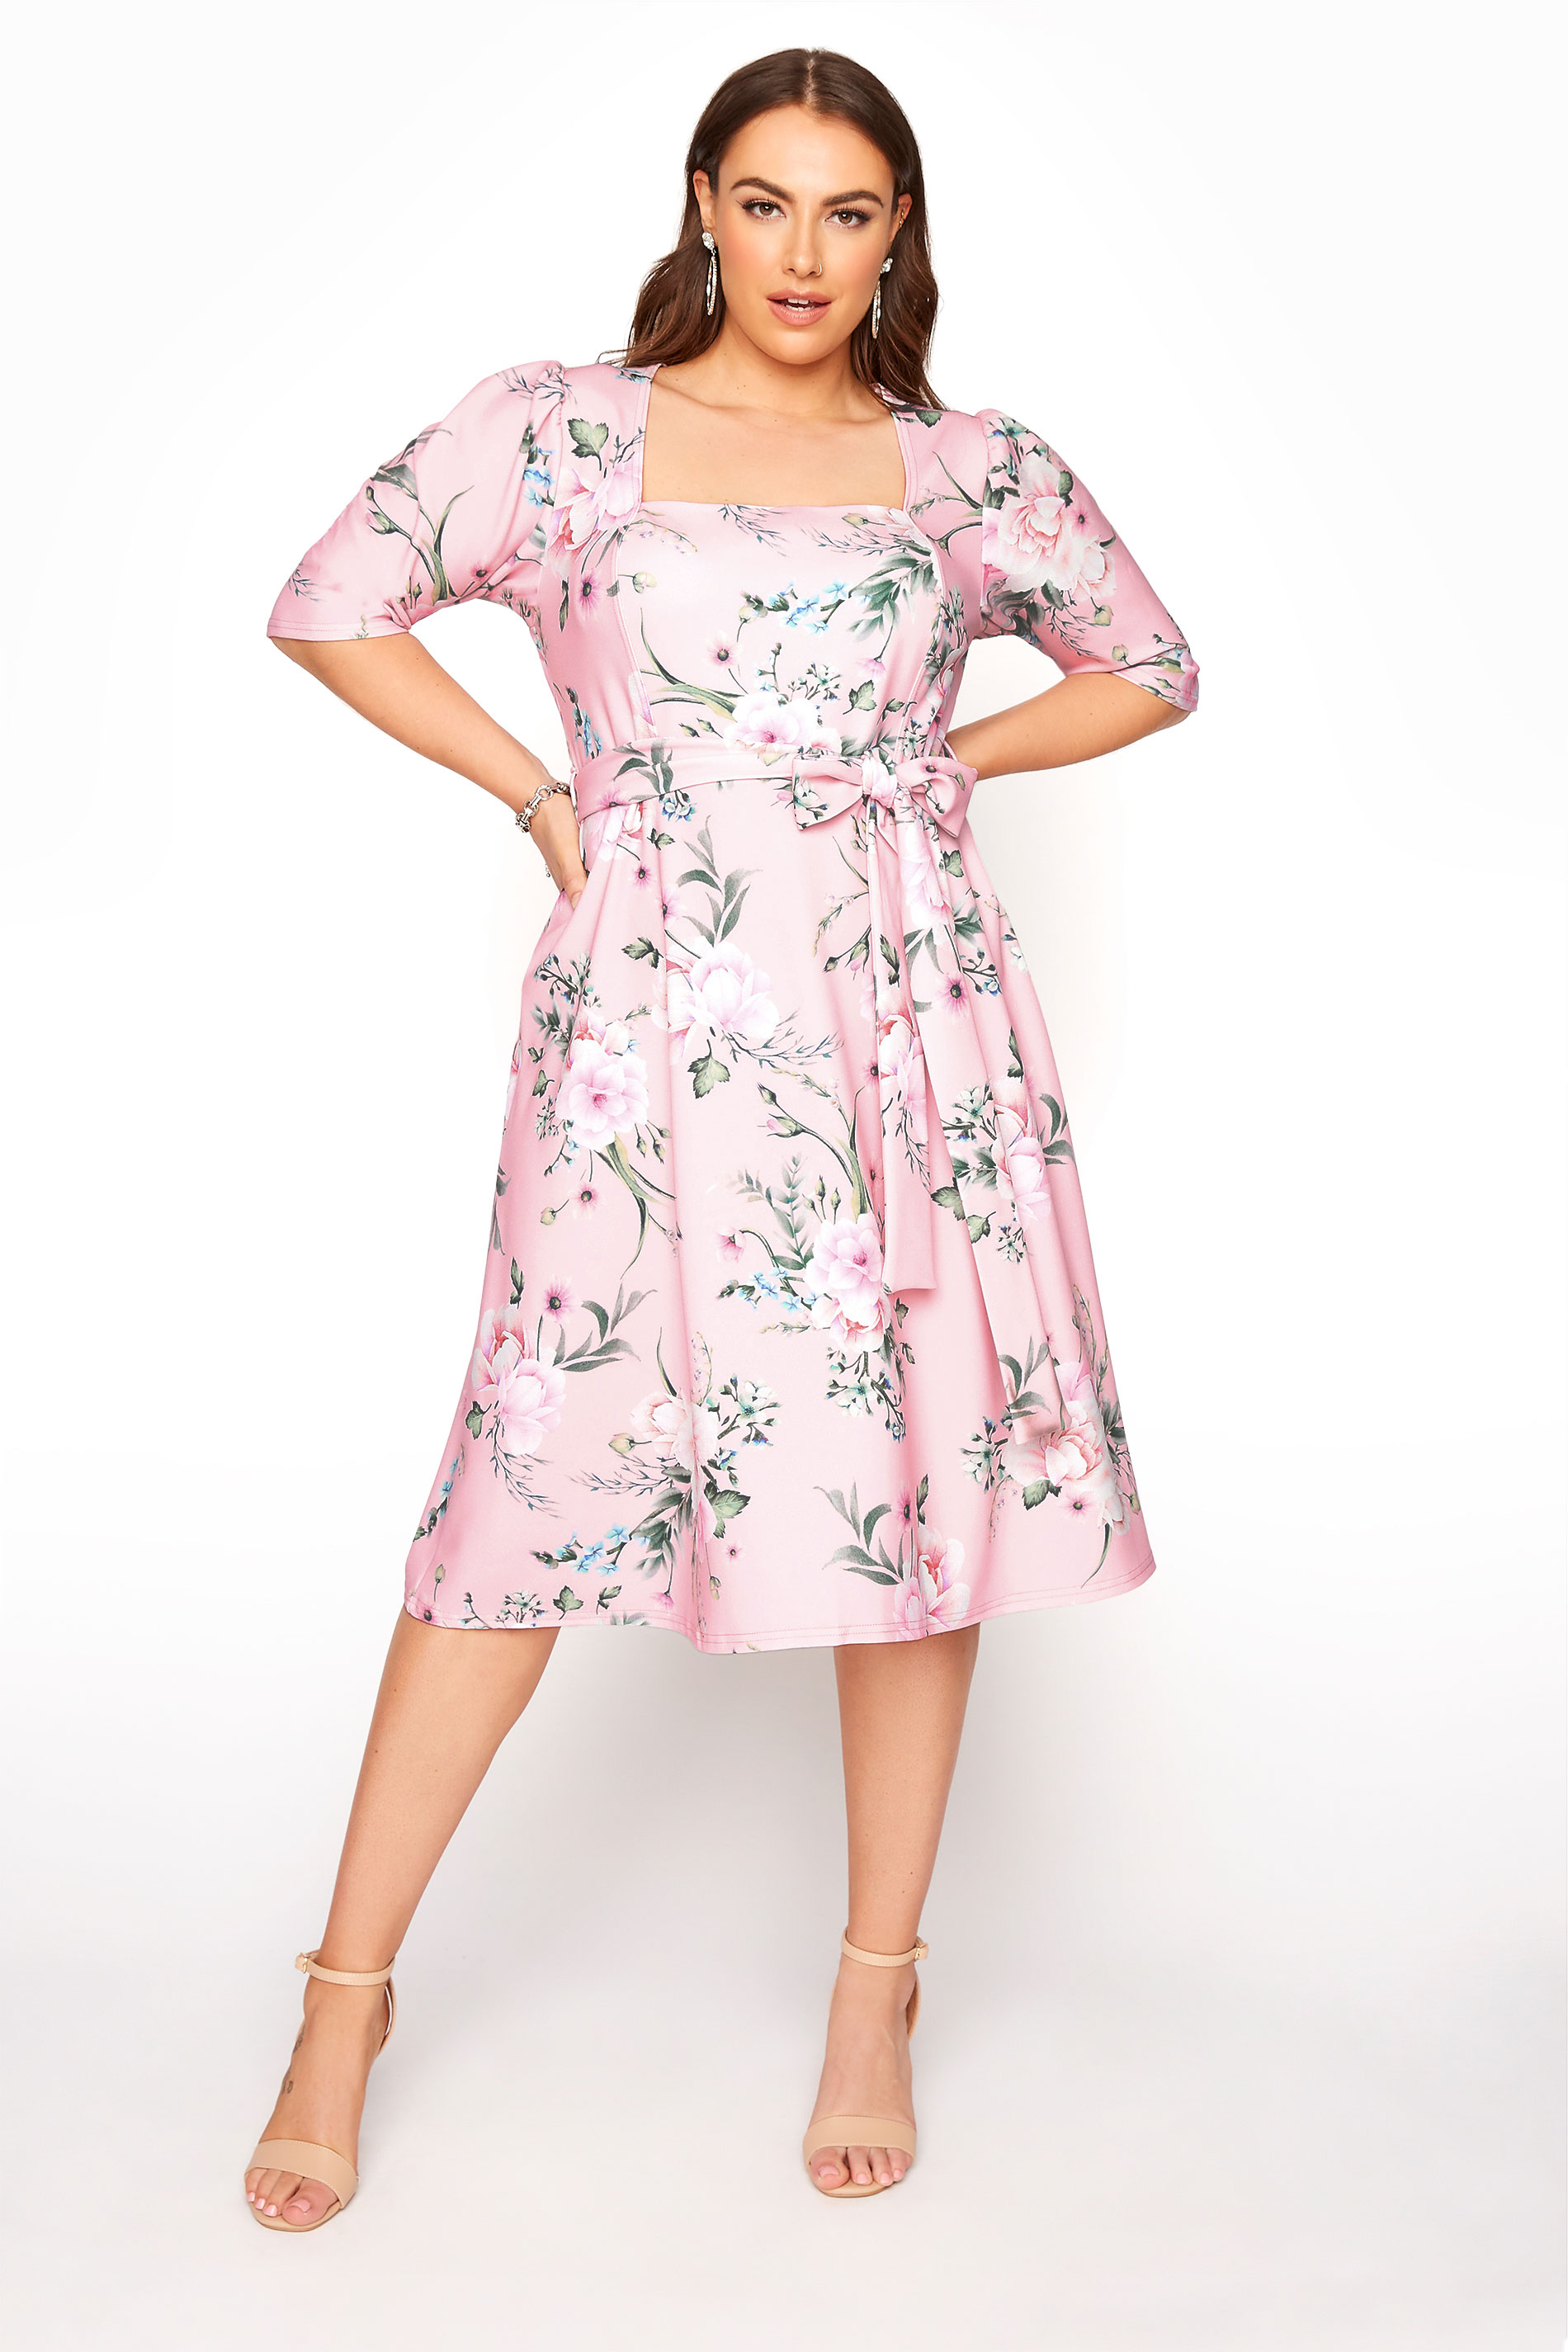 YOURS LONDON Pink Floral Square Neck Dress